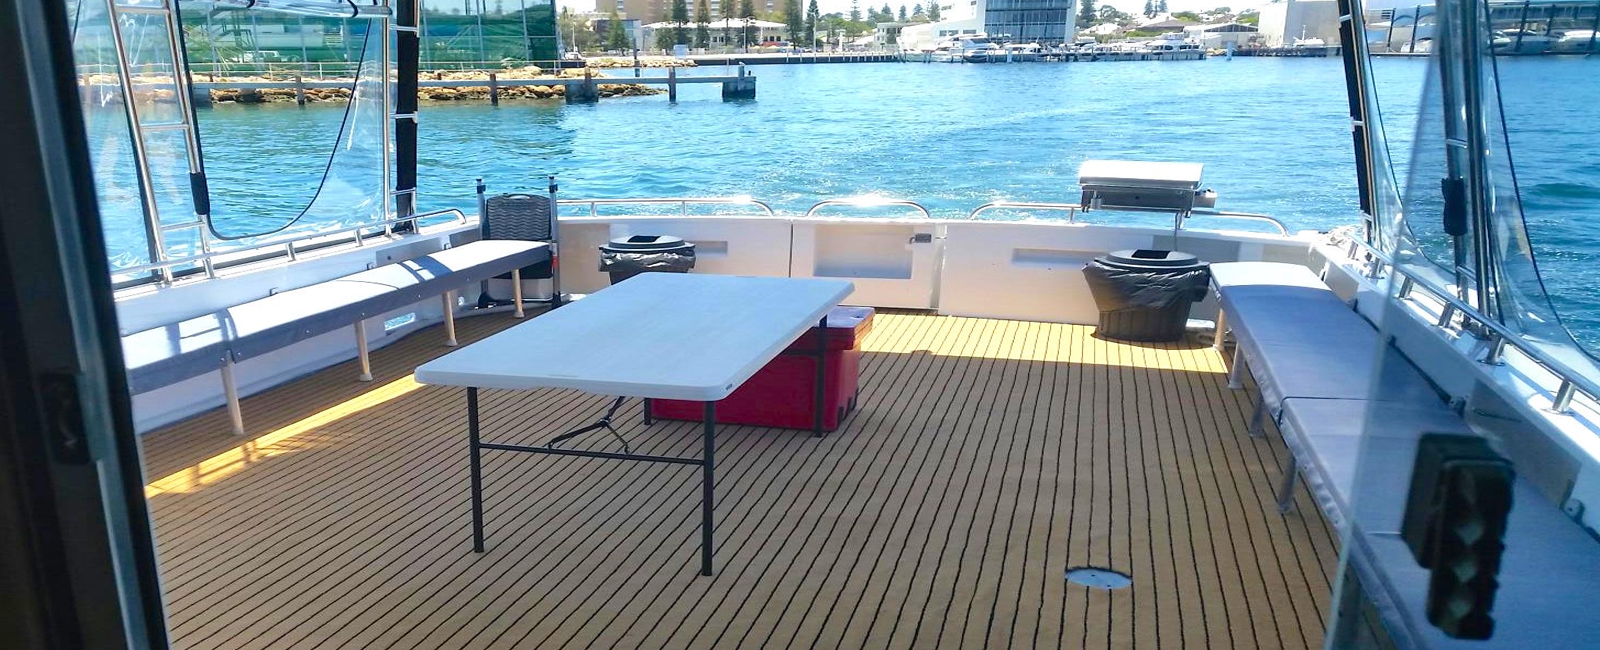 DARLING ISABELLE-boat-charter-hire-perth-wa-back-deck-